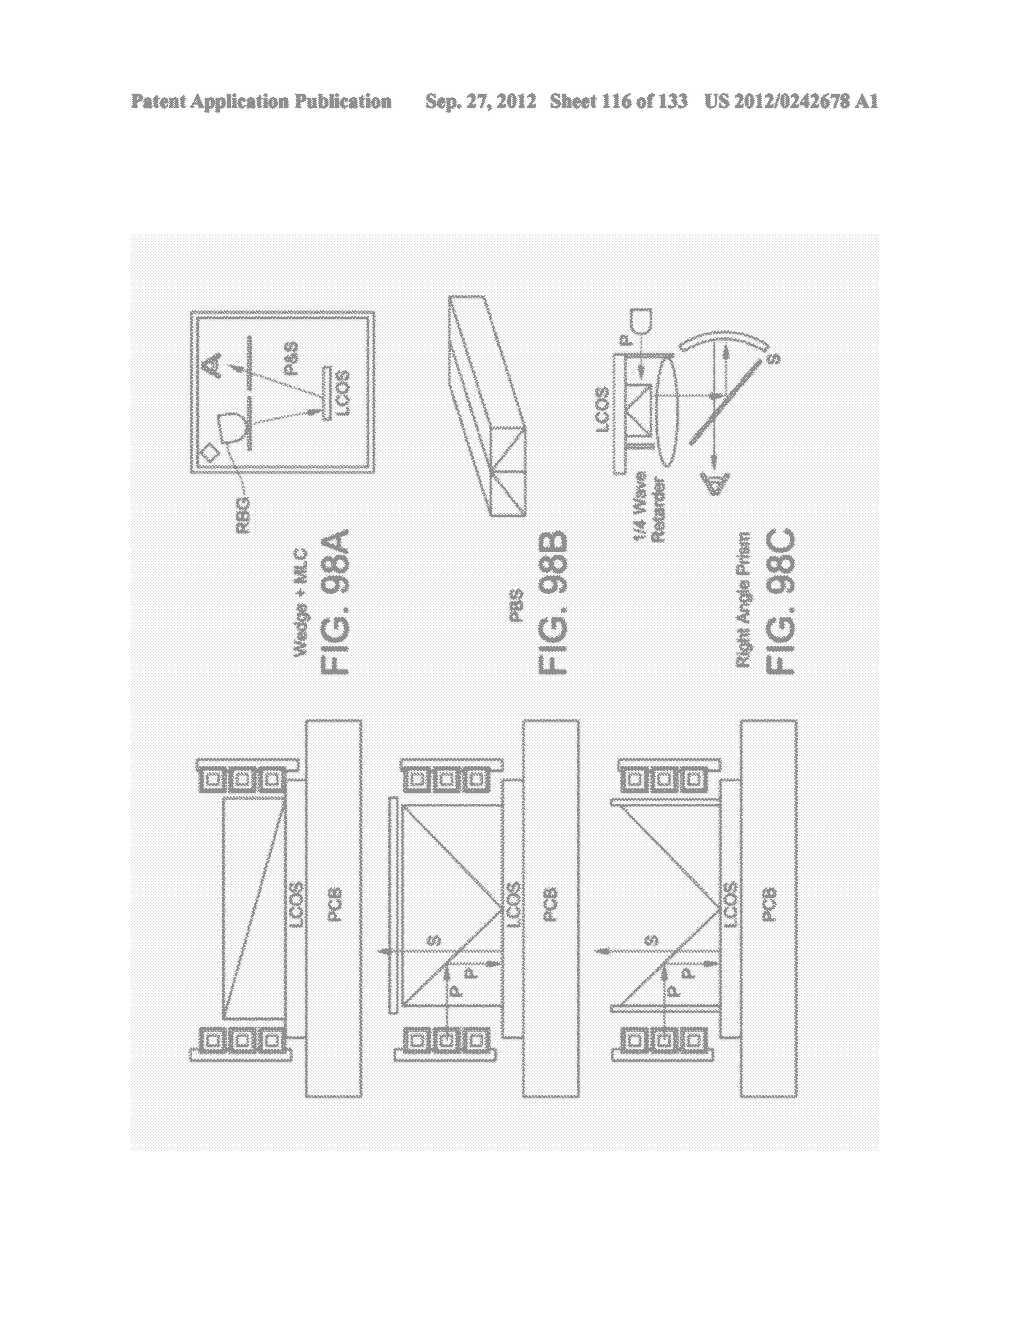 SEE-THROUGH NEAR-EYE DISPLAY GLASSES INCLUDING AN AUTO-BRIGHTNESS CONTROL     FOR THE DISPLAY BRIGHTNESS BASED ON THE BRIGHTNESS IN THE ENVIRONMENT - diagram, schematic, and image 117